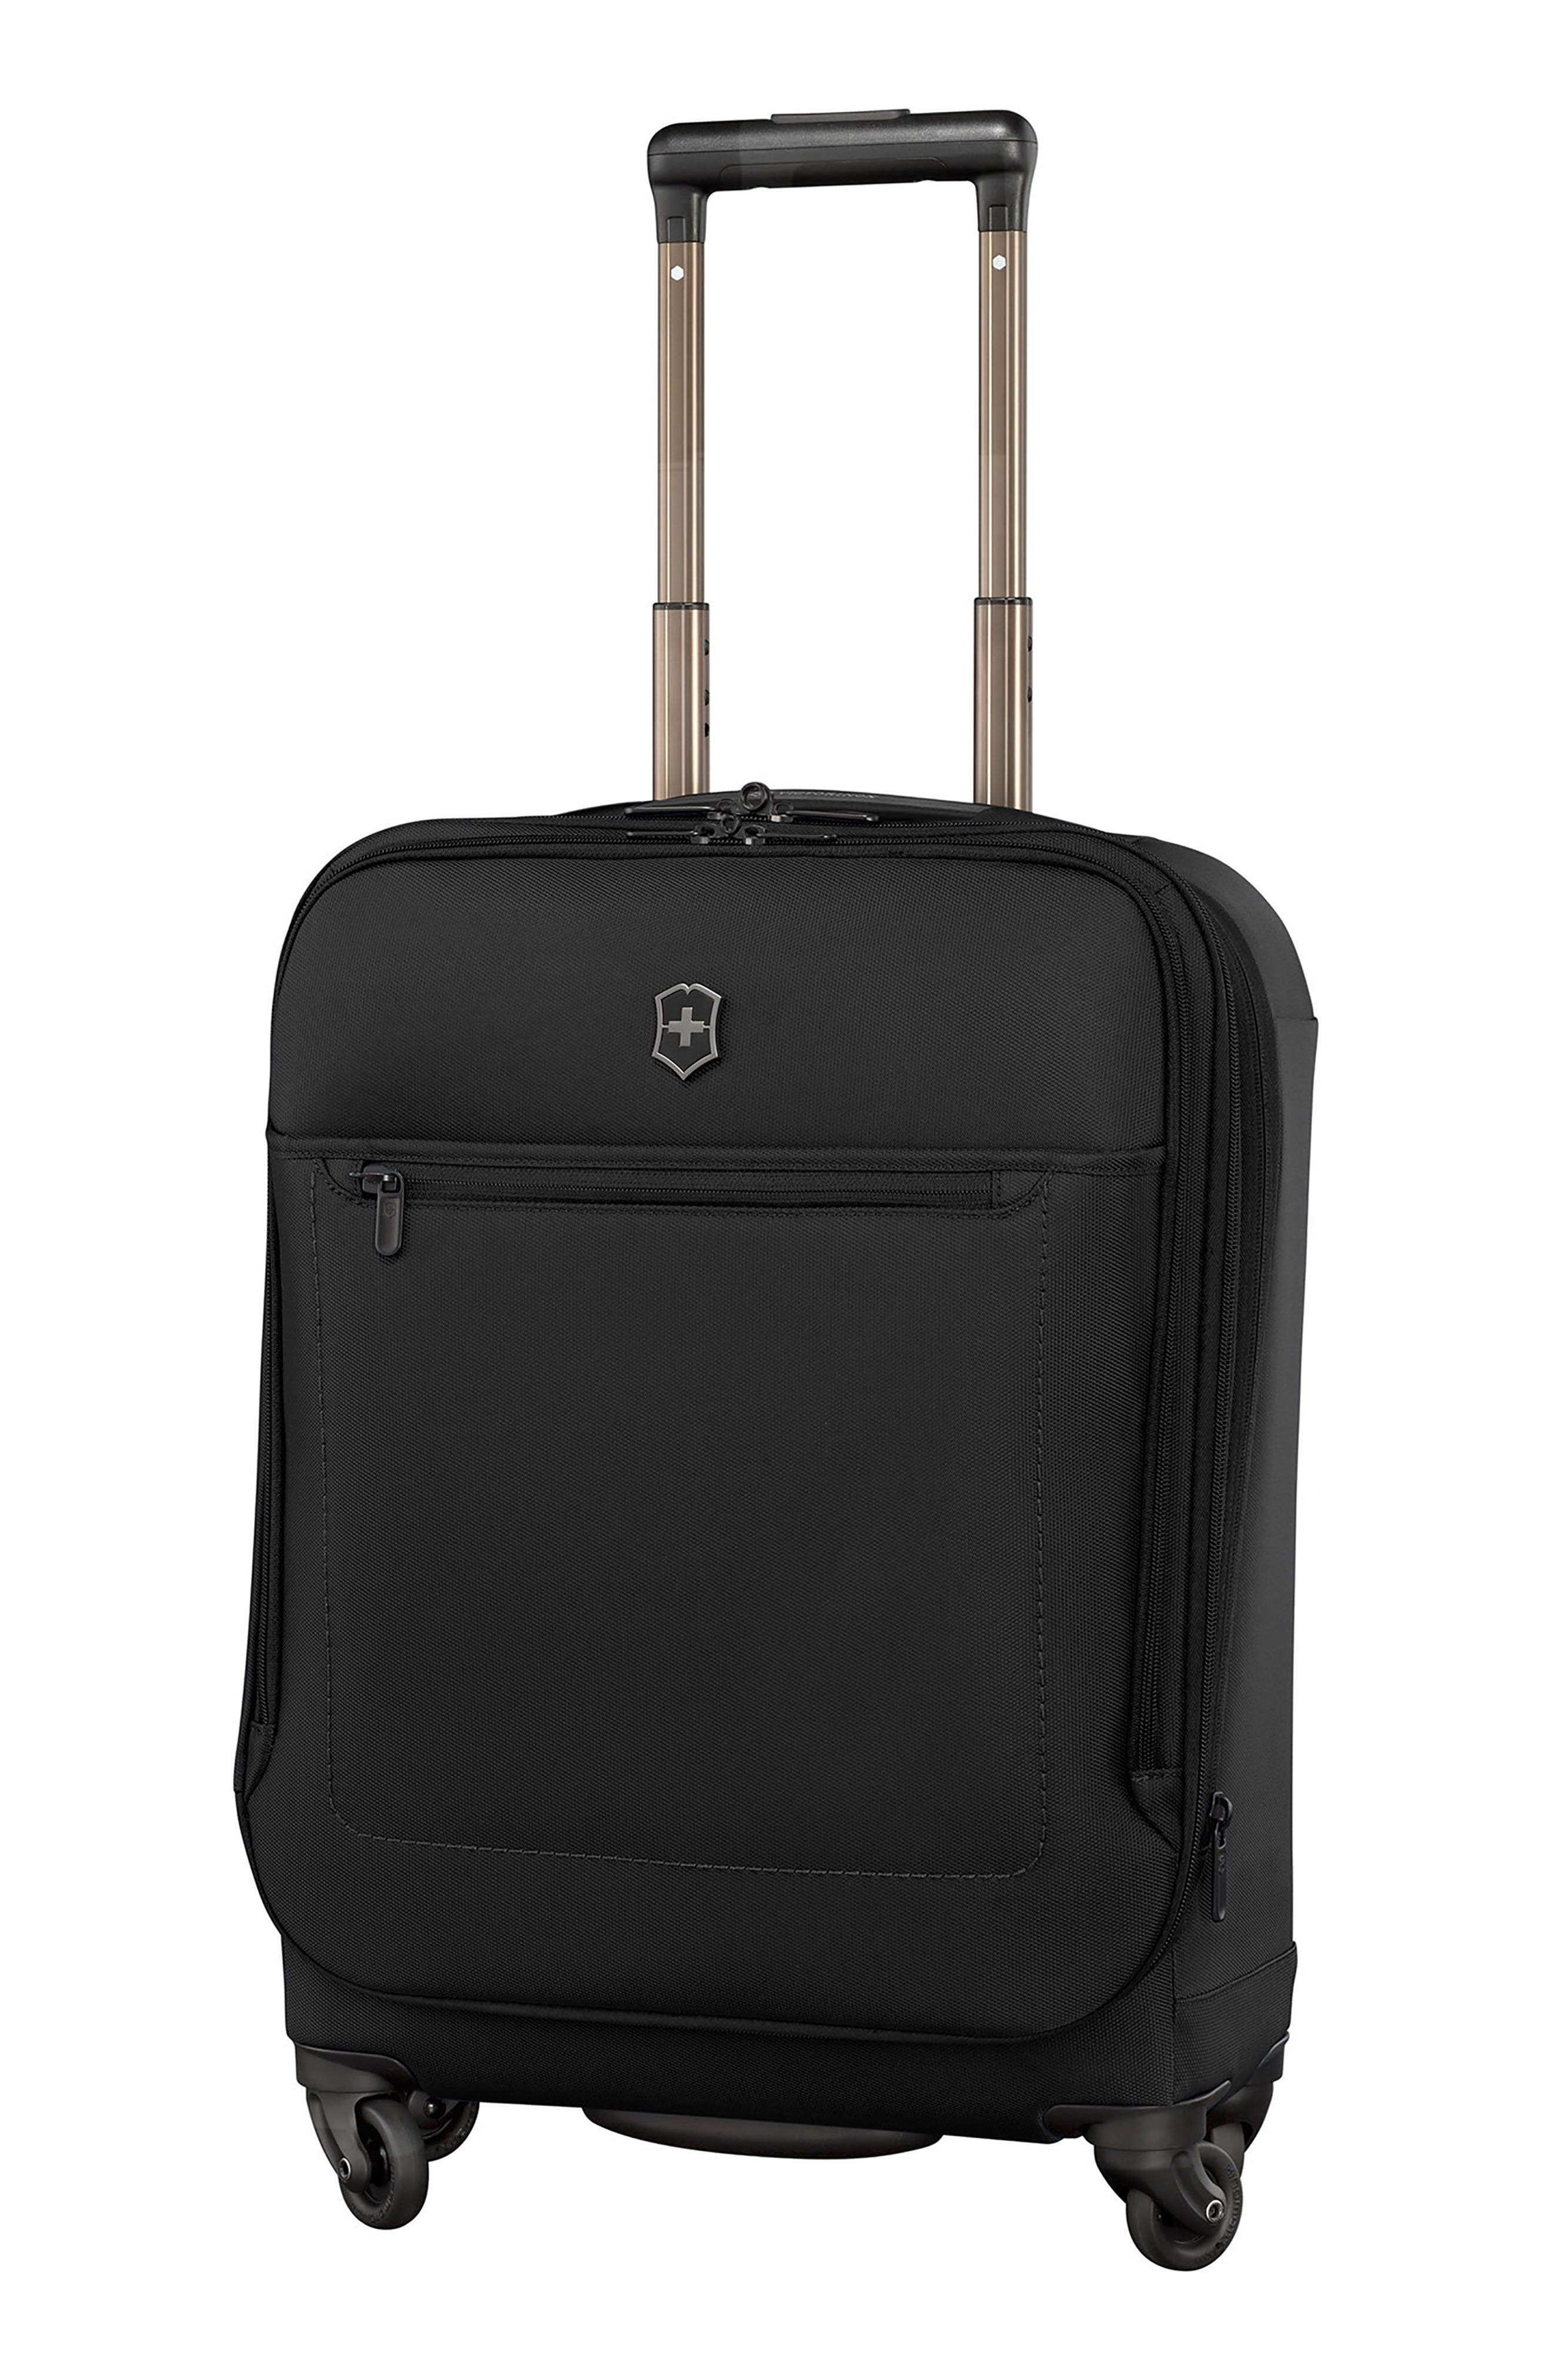 VICTORINOX SWISS ARMY<SUP>®</SUP> Avolve 3.0 Global 22 Inch Wheeled Carry-On